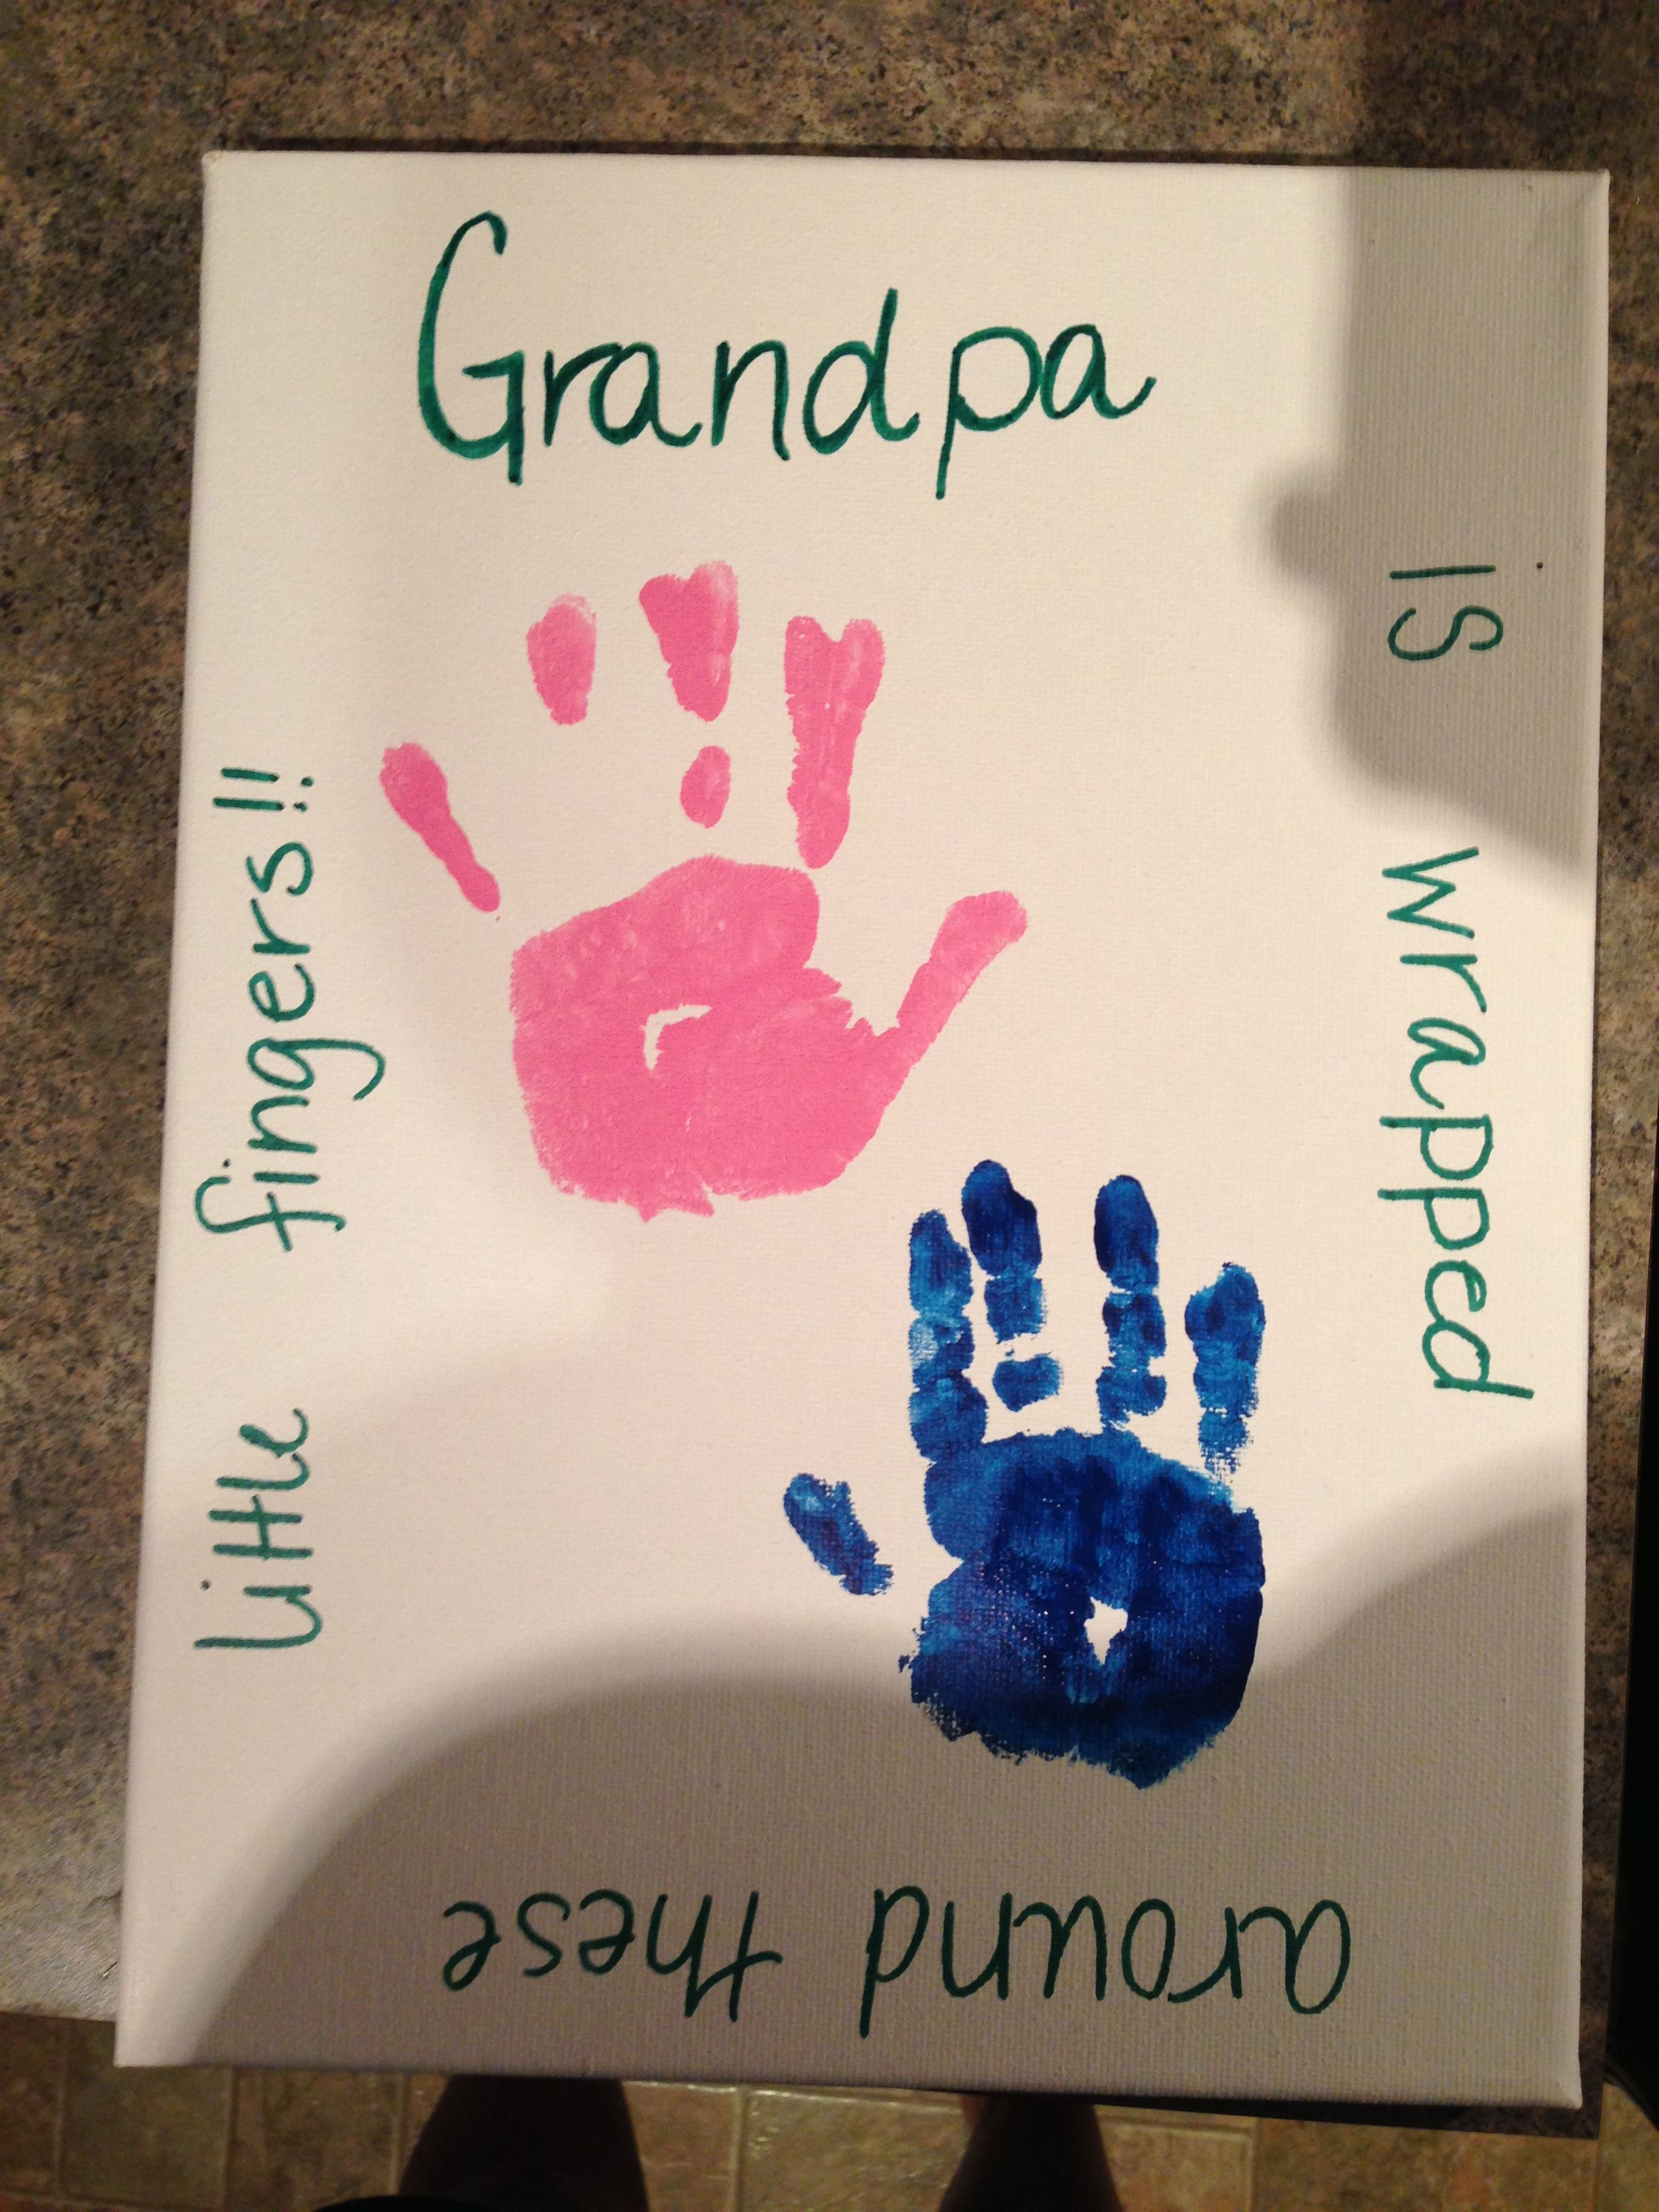 Grandpas fathers day gift stuff weve made pinterest gift grandpas fathers day handmade it yourself gifts handmade gifts gifts gifts solutioingenieria Image collections